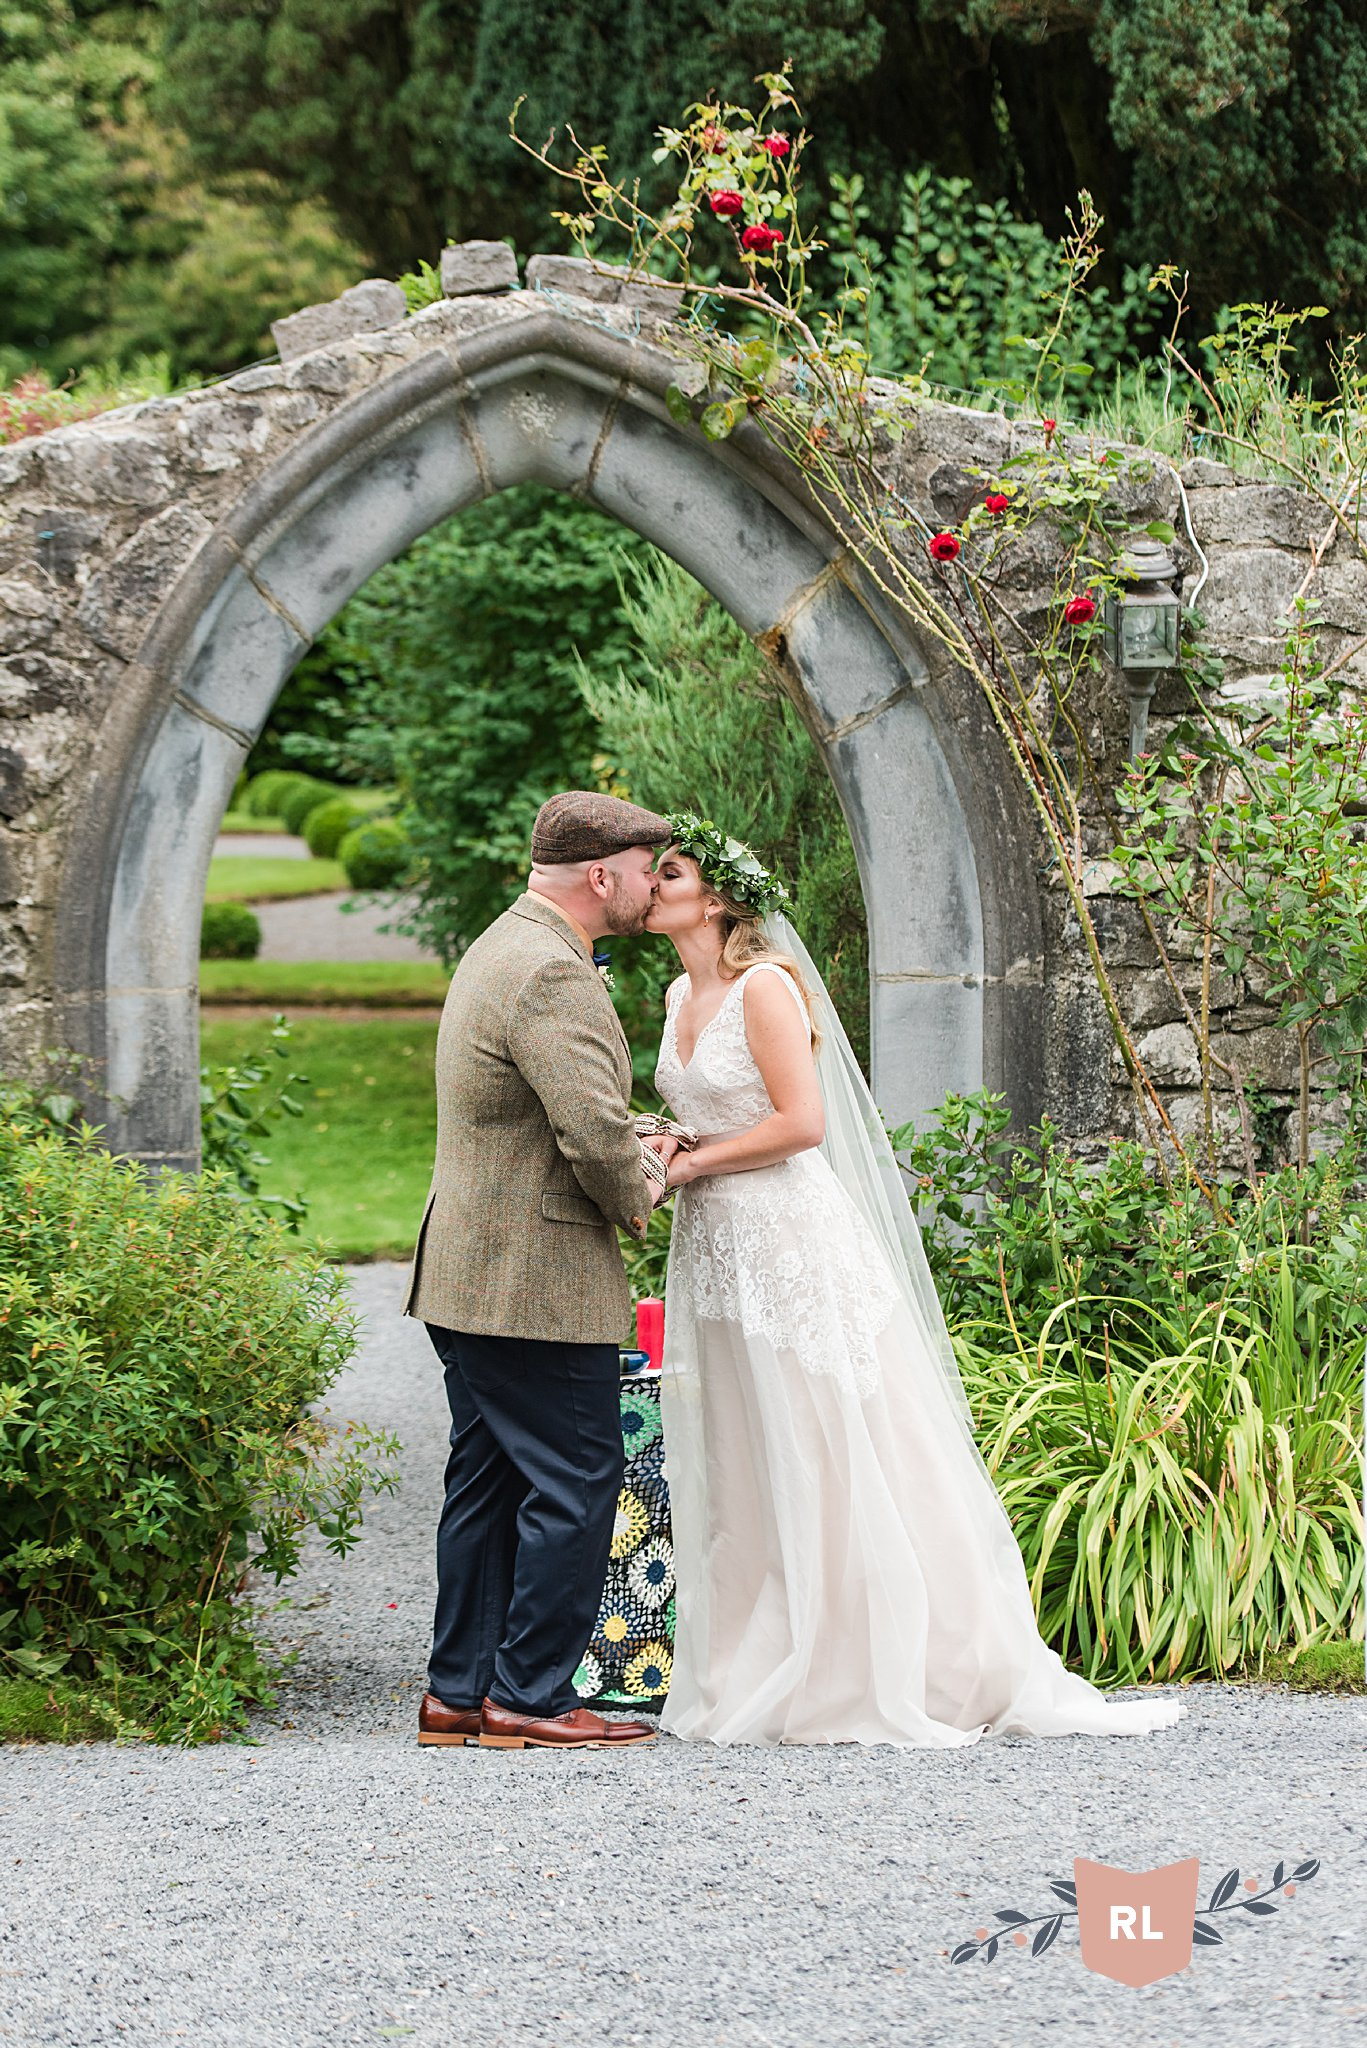 RossCastleWedding_Ireland_1024.jpg